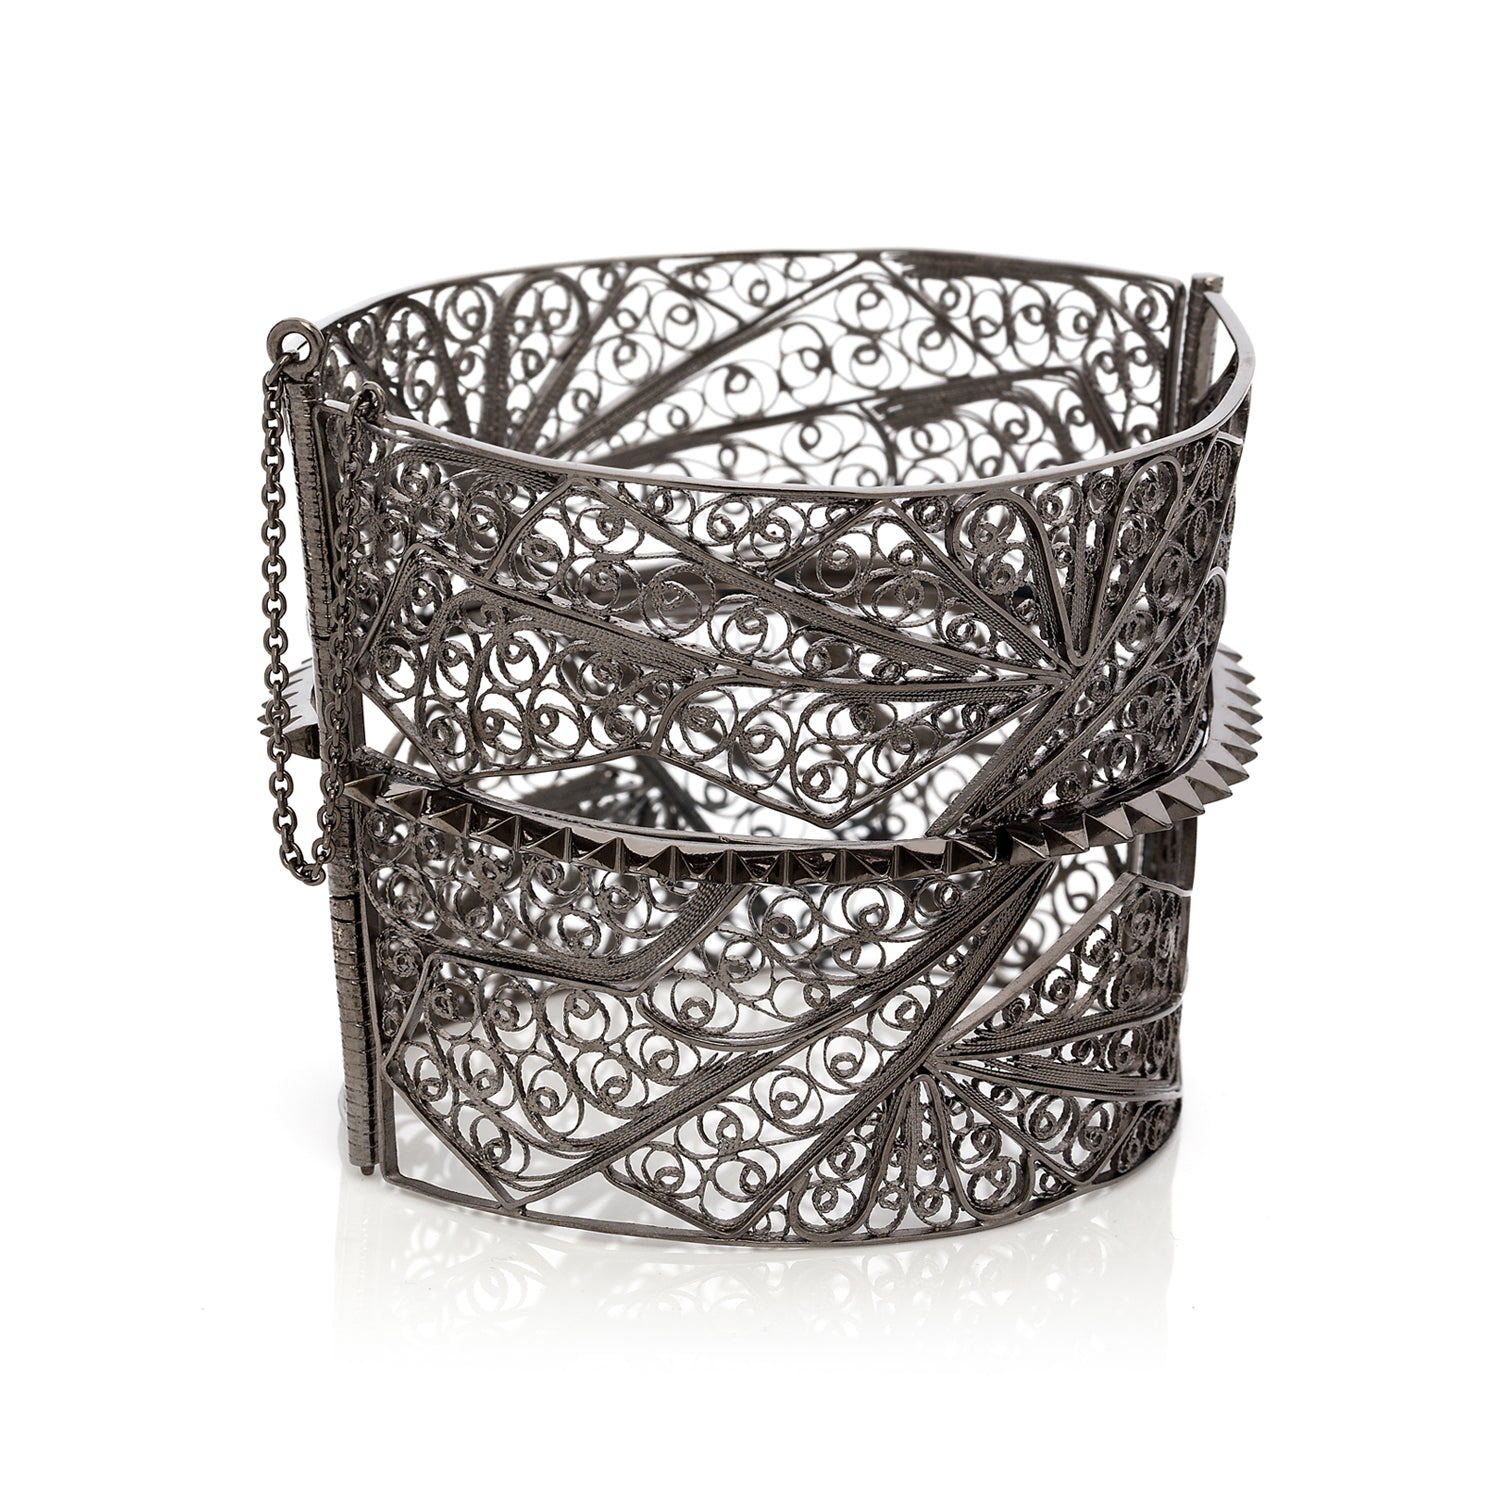 Studed Filigree Bangle. Hand-made Filigree technique. Sterling Silver